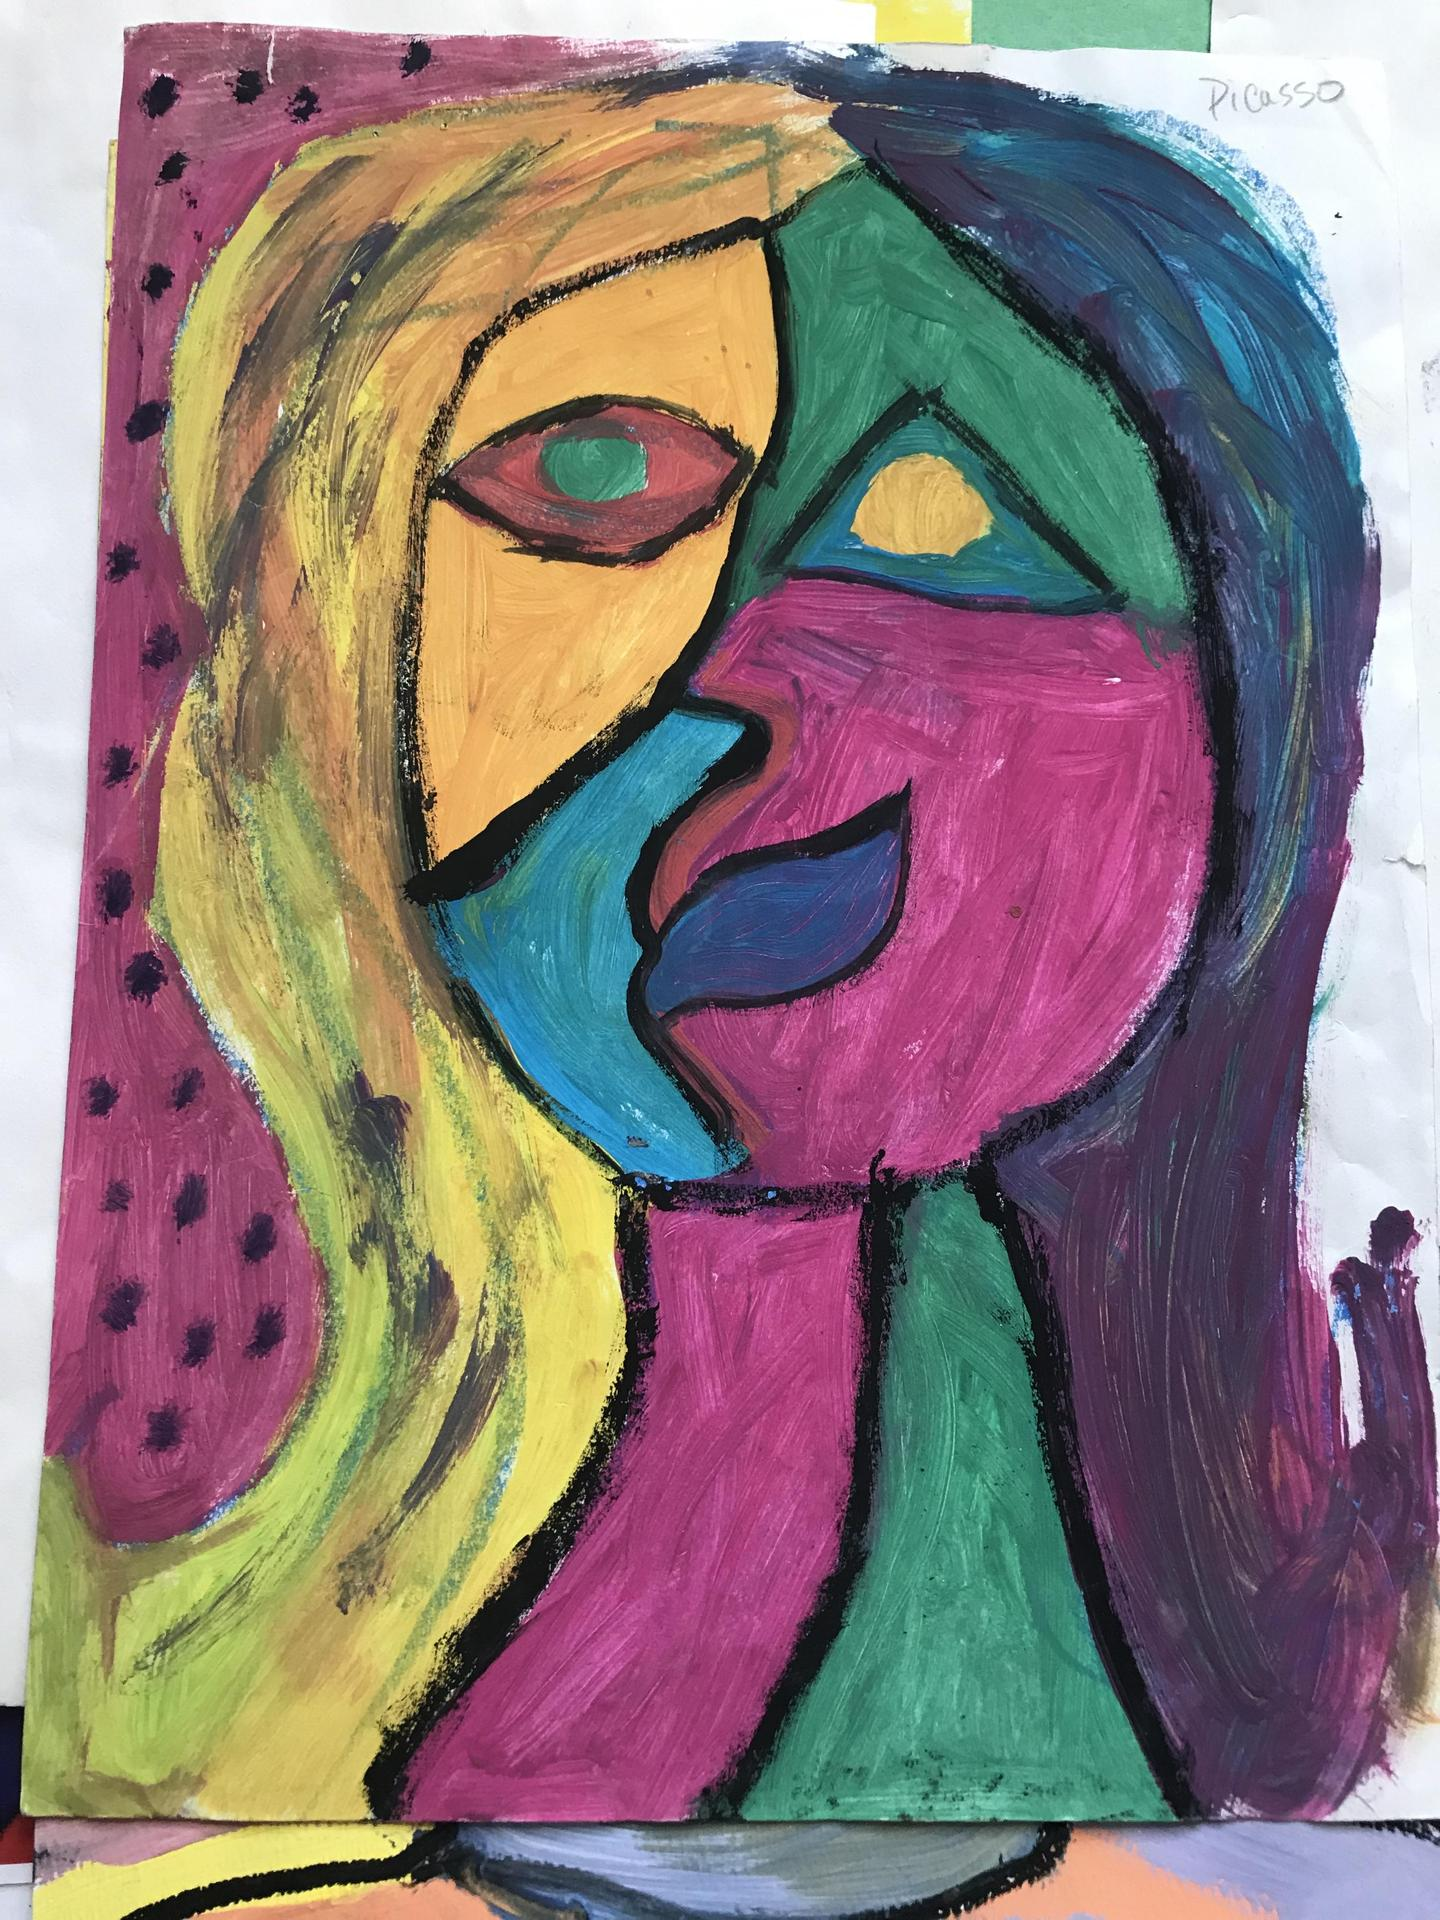 Art In Action Inspired by Picasso